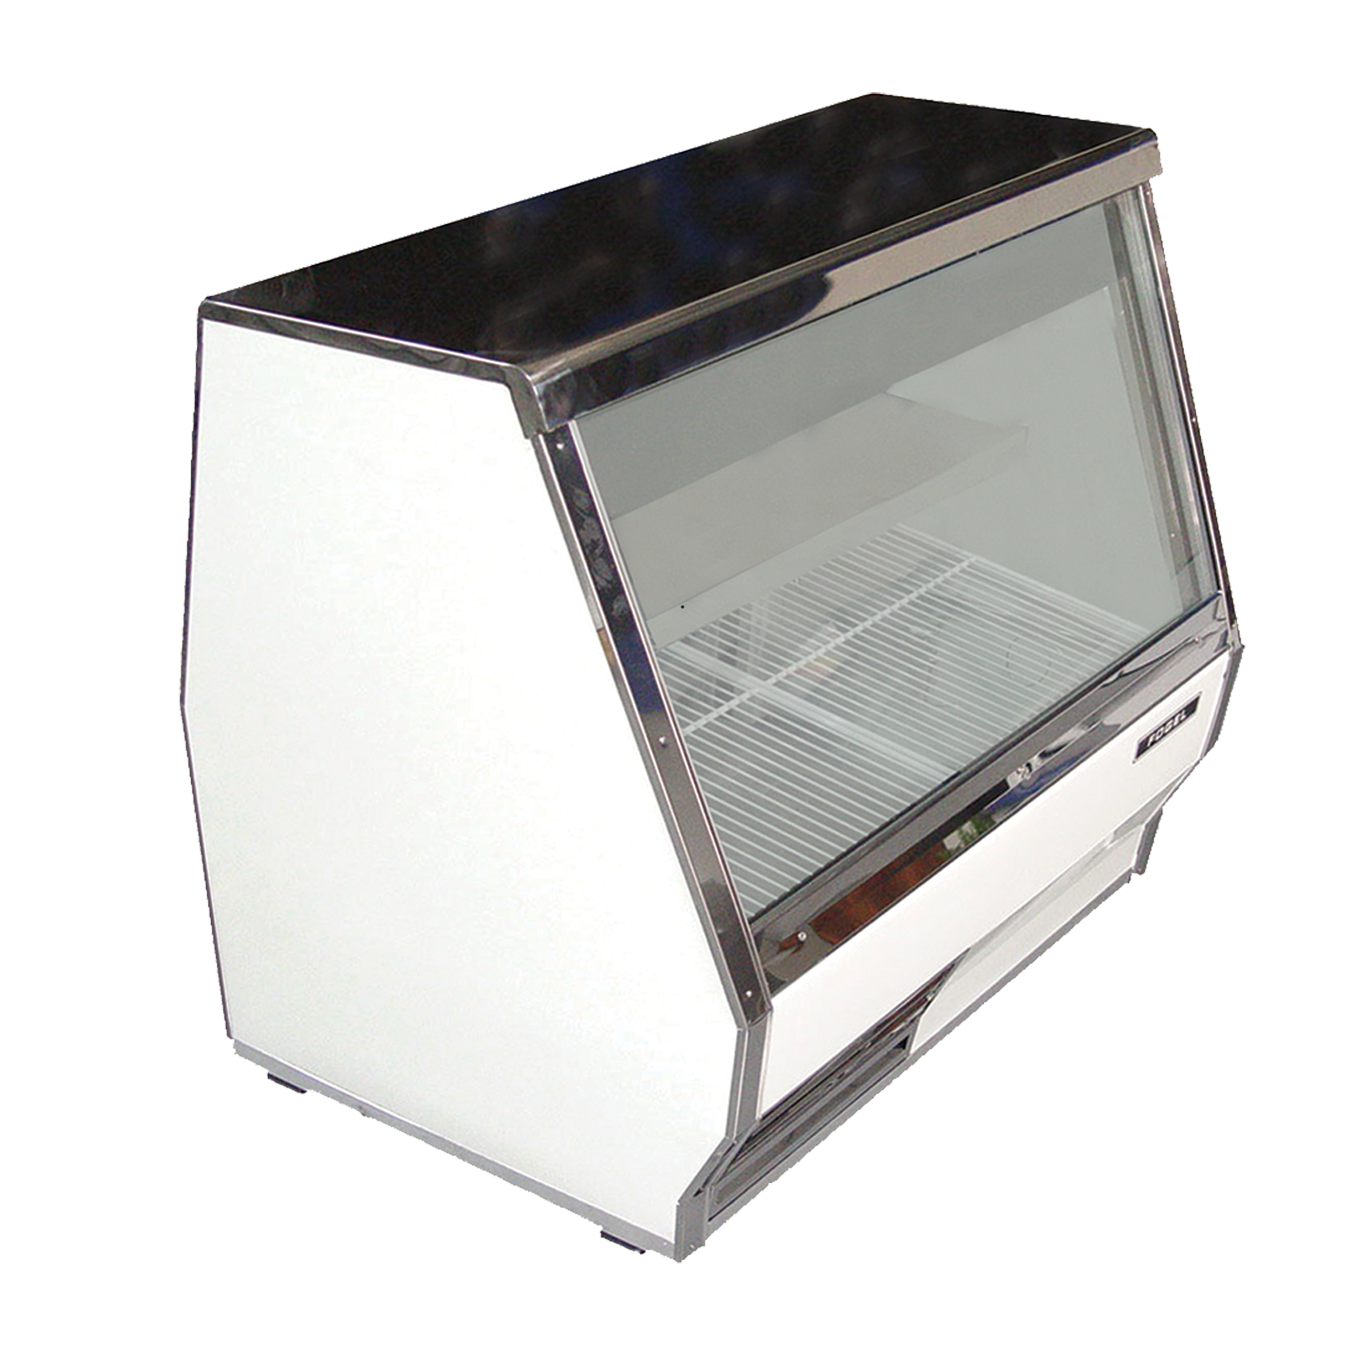 Fogel USA 5004-SC display case, refrigerated deli